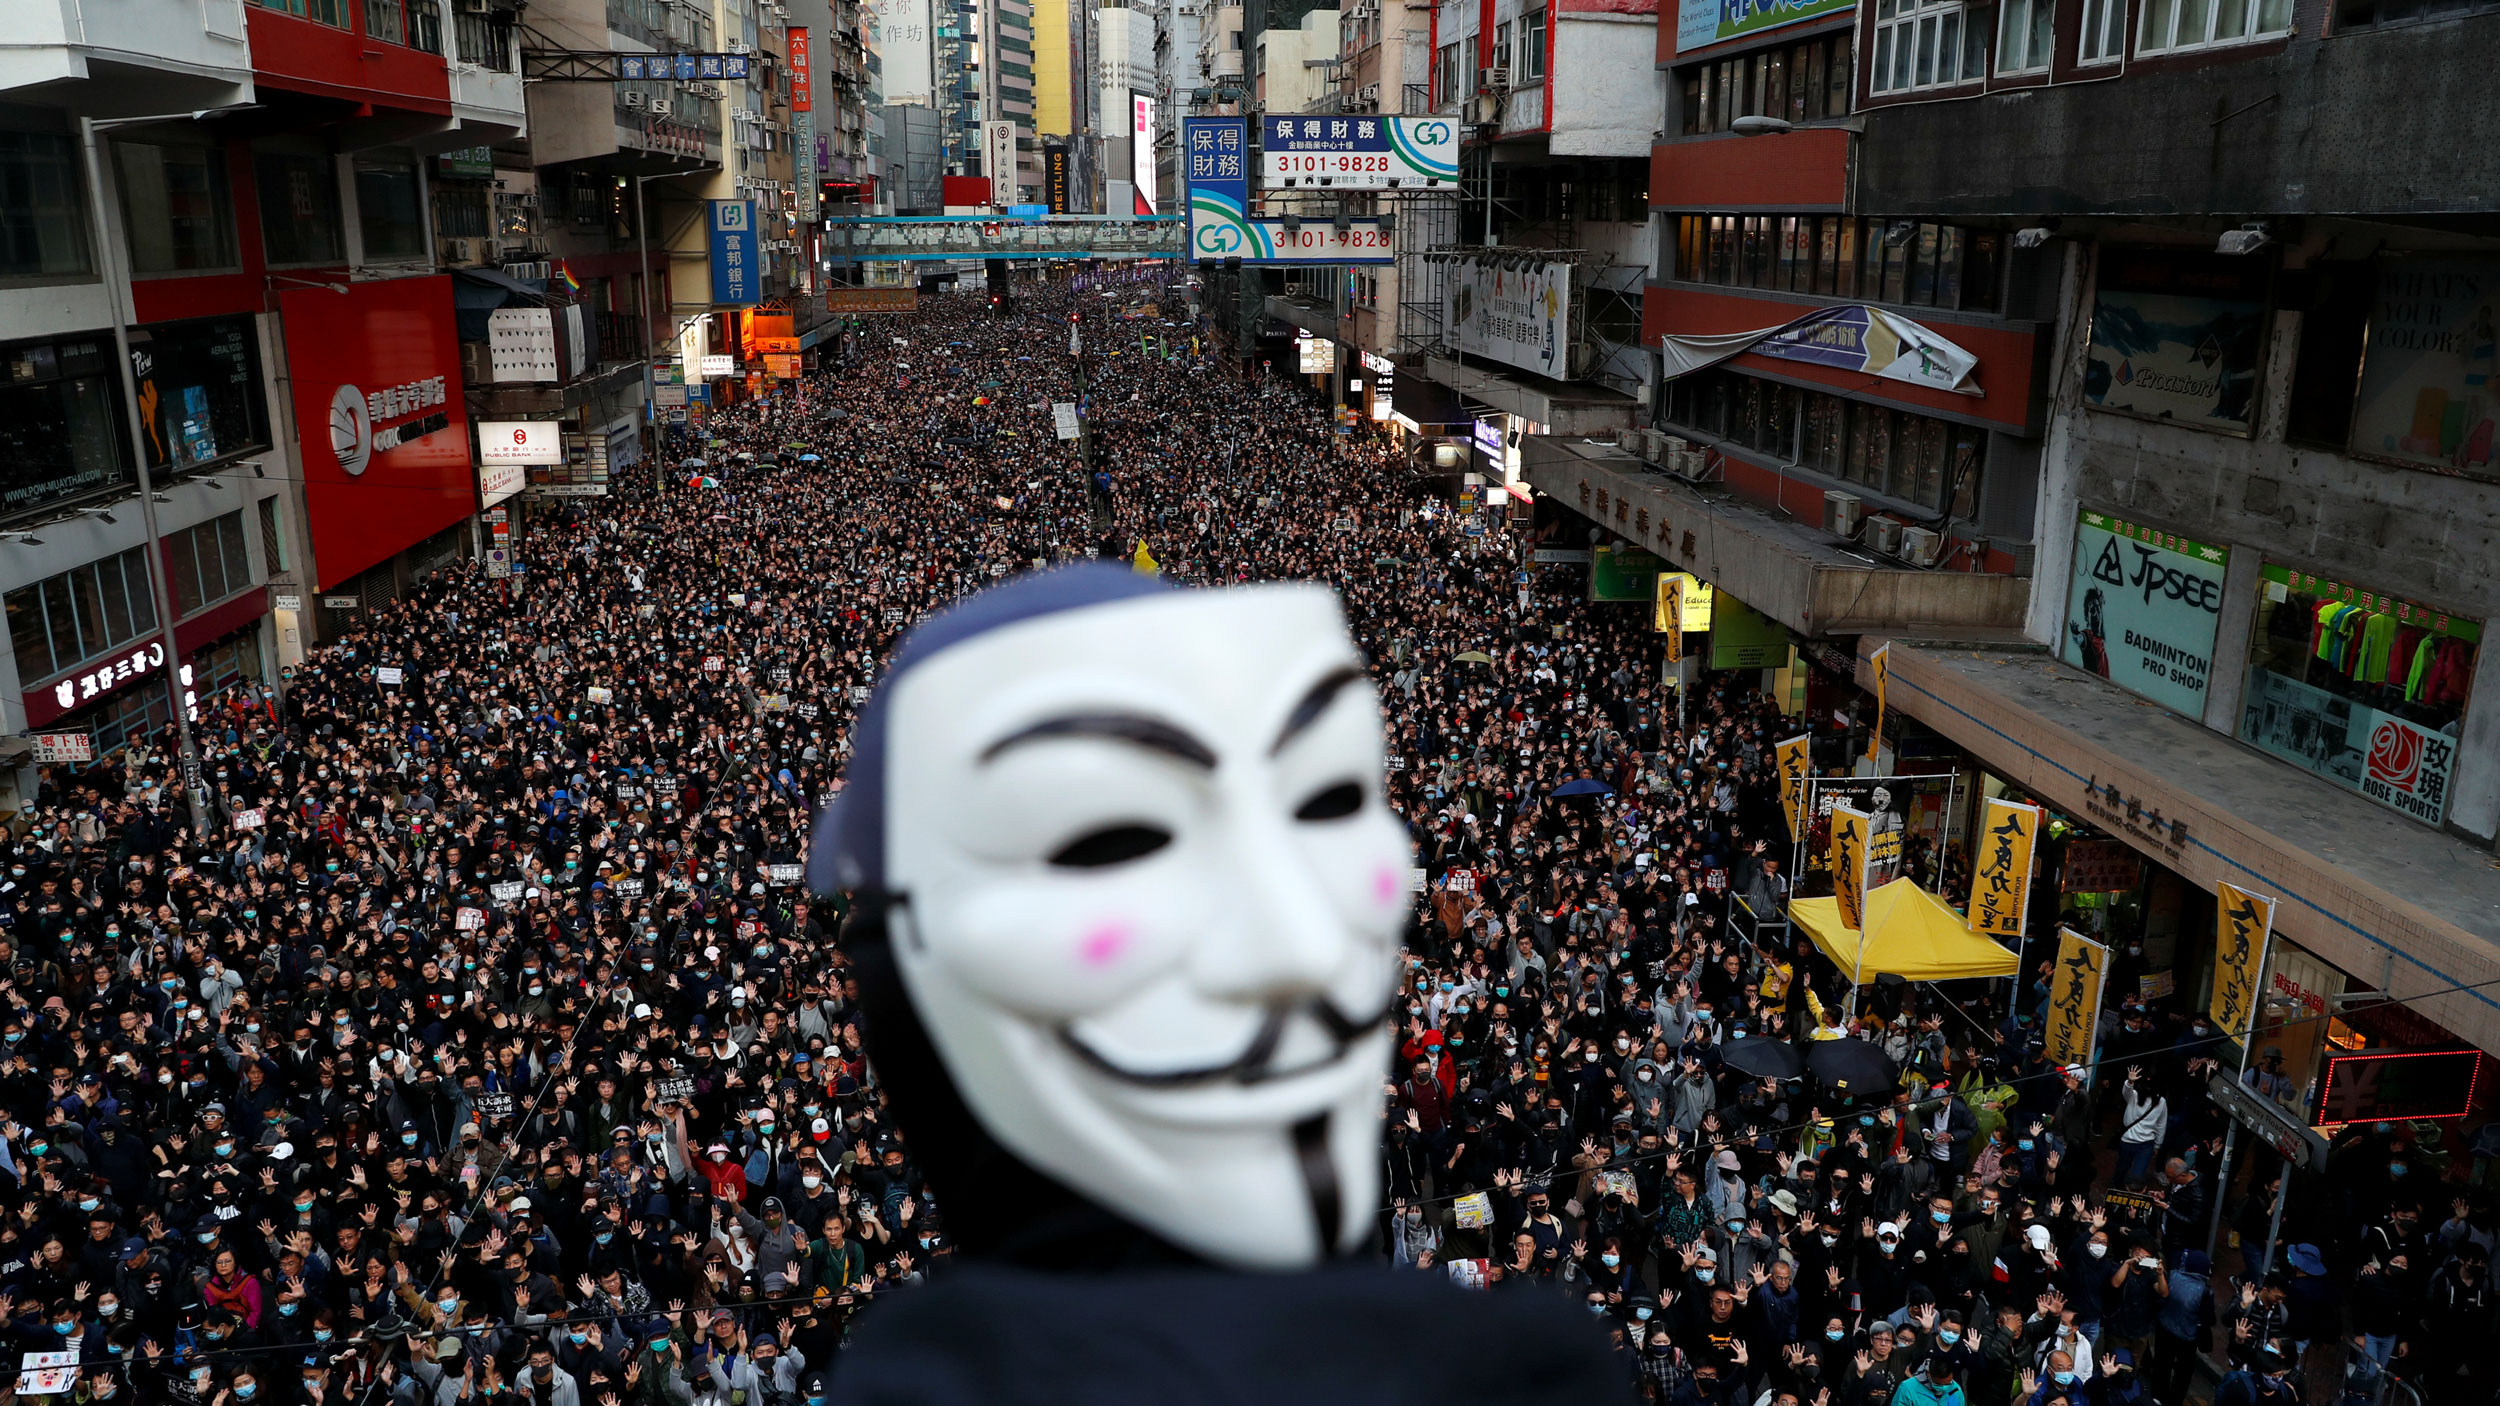 A protester wearing a Guy Fawkes mask attends a Human Rights Day march organized by the Civil Human Right Front, in Hong Kong, China, on Dec. 8, 2019.